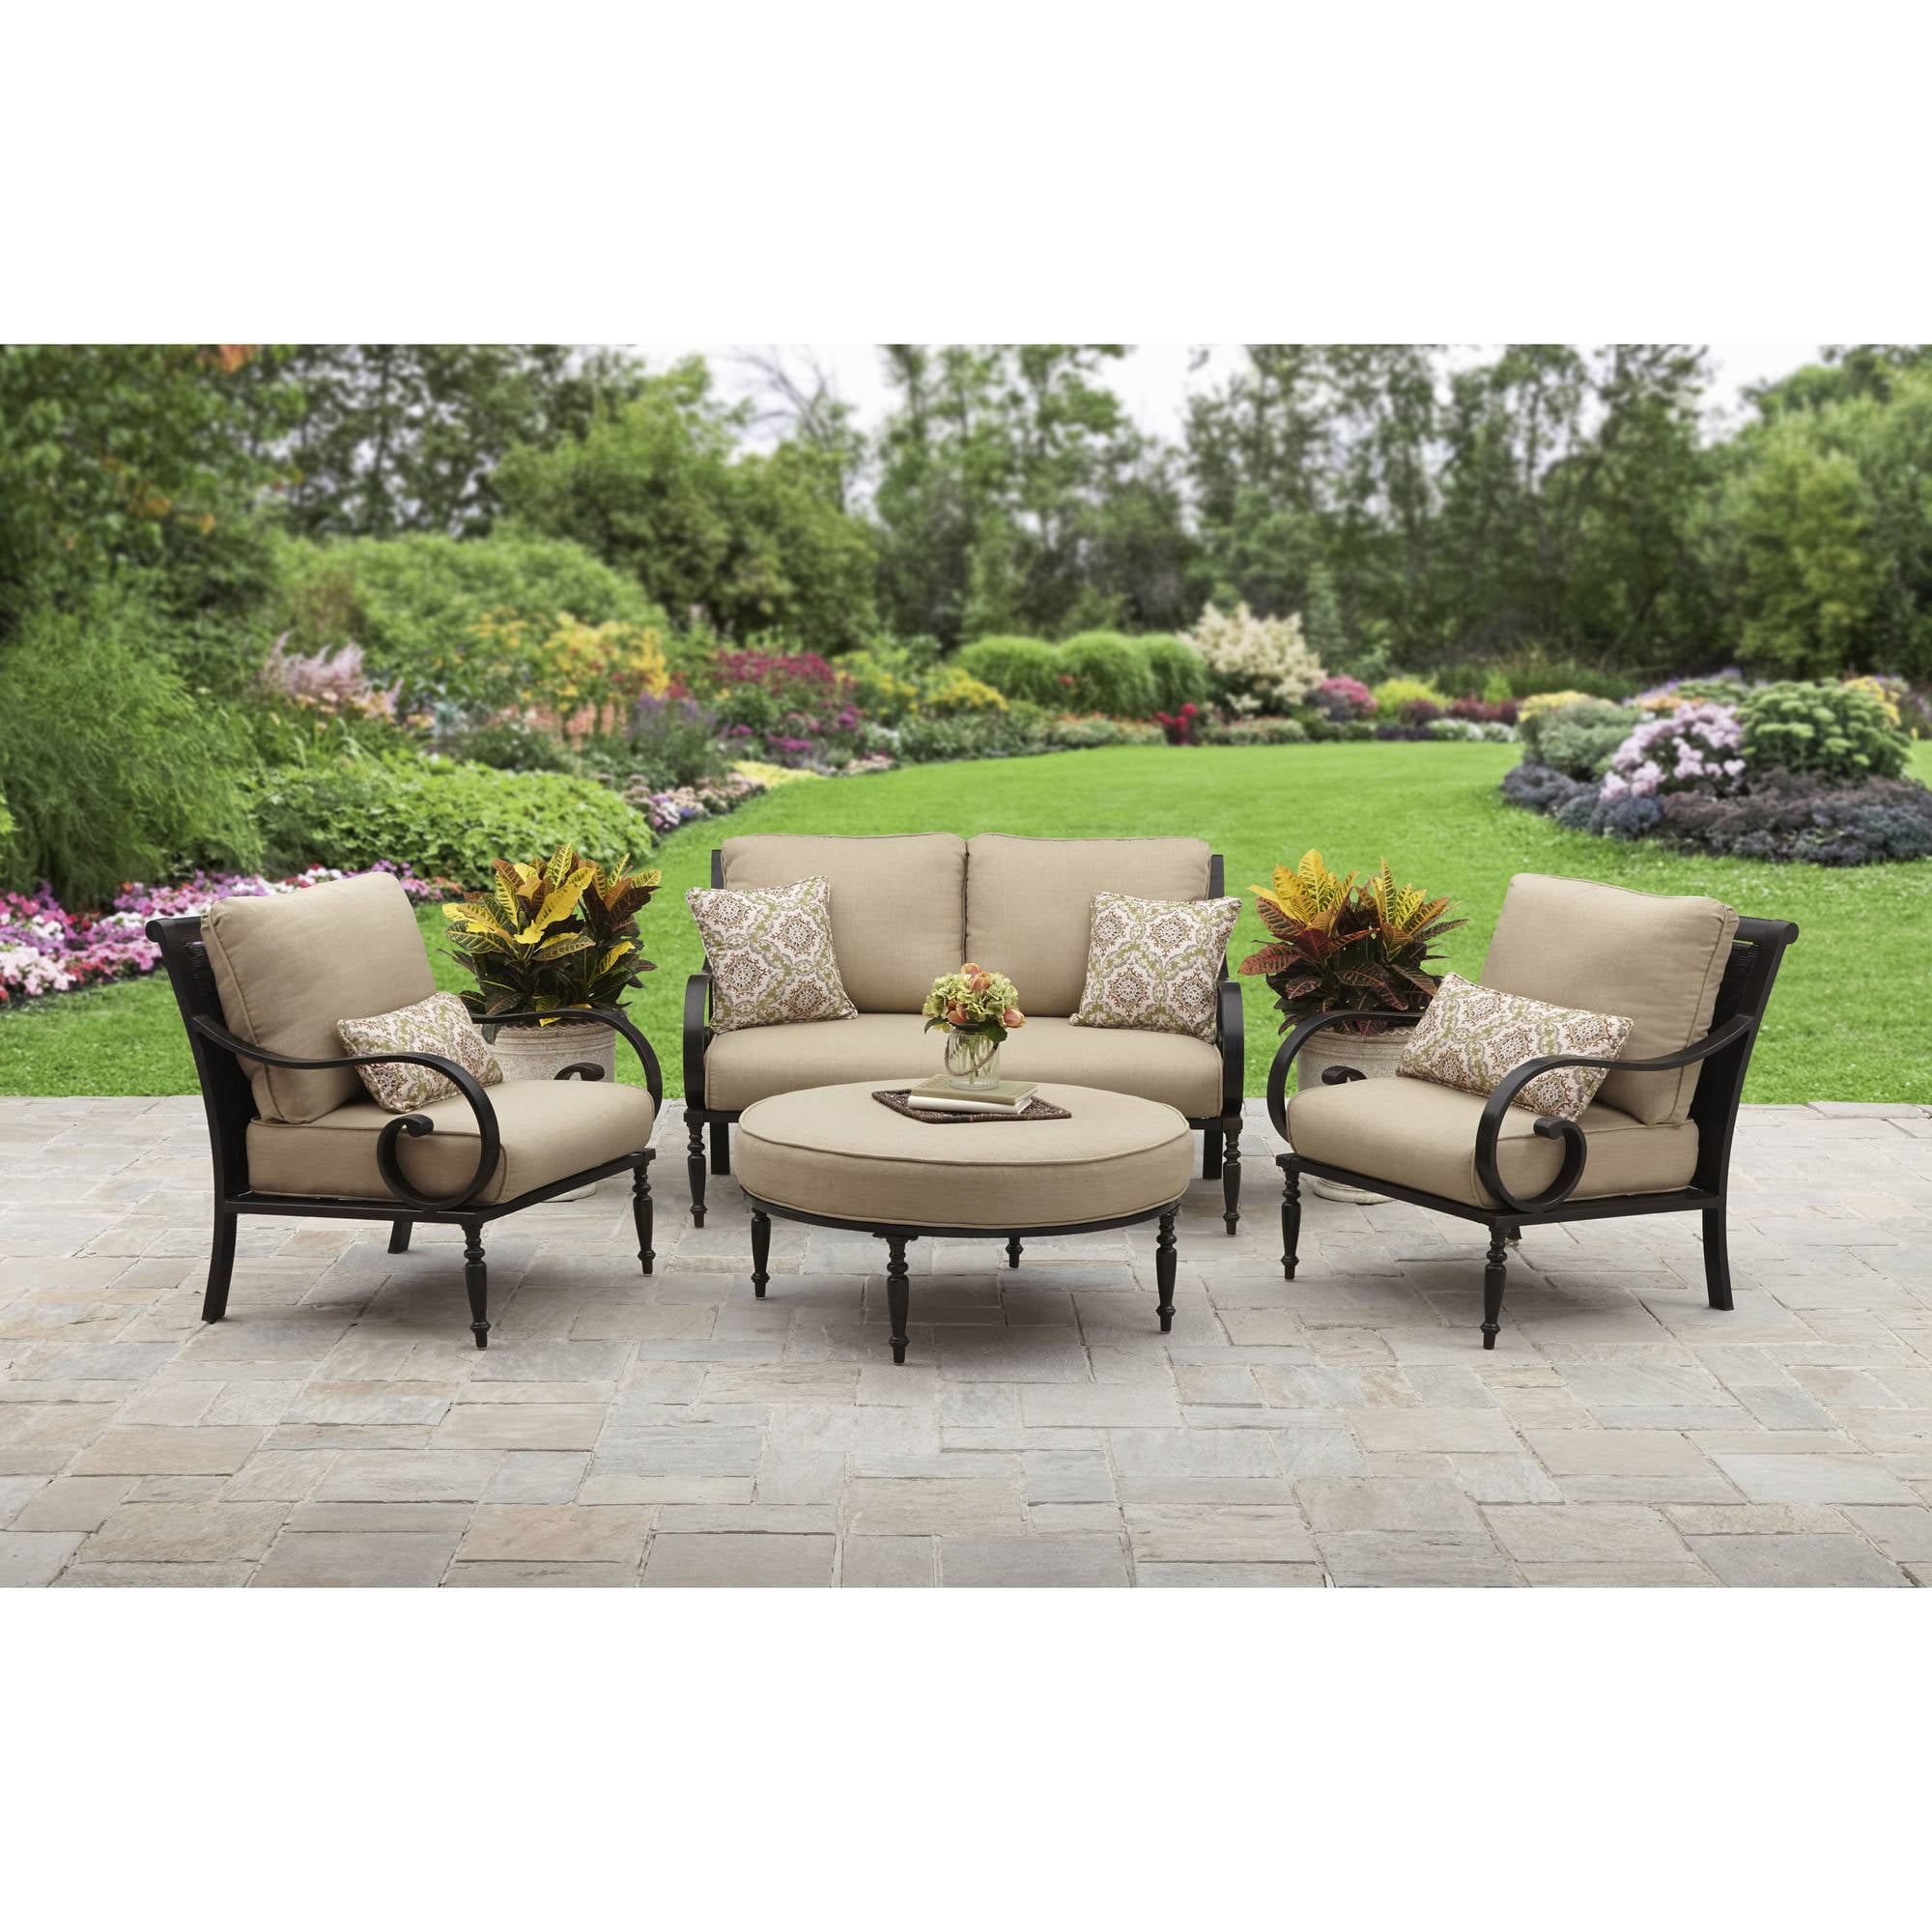 better homes and gardens englewood heights ii aluminum 4 piece rh walmart com better homes and gardens patio furniture pads better homes and gardens patio furniture 2006